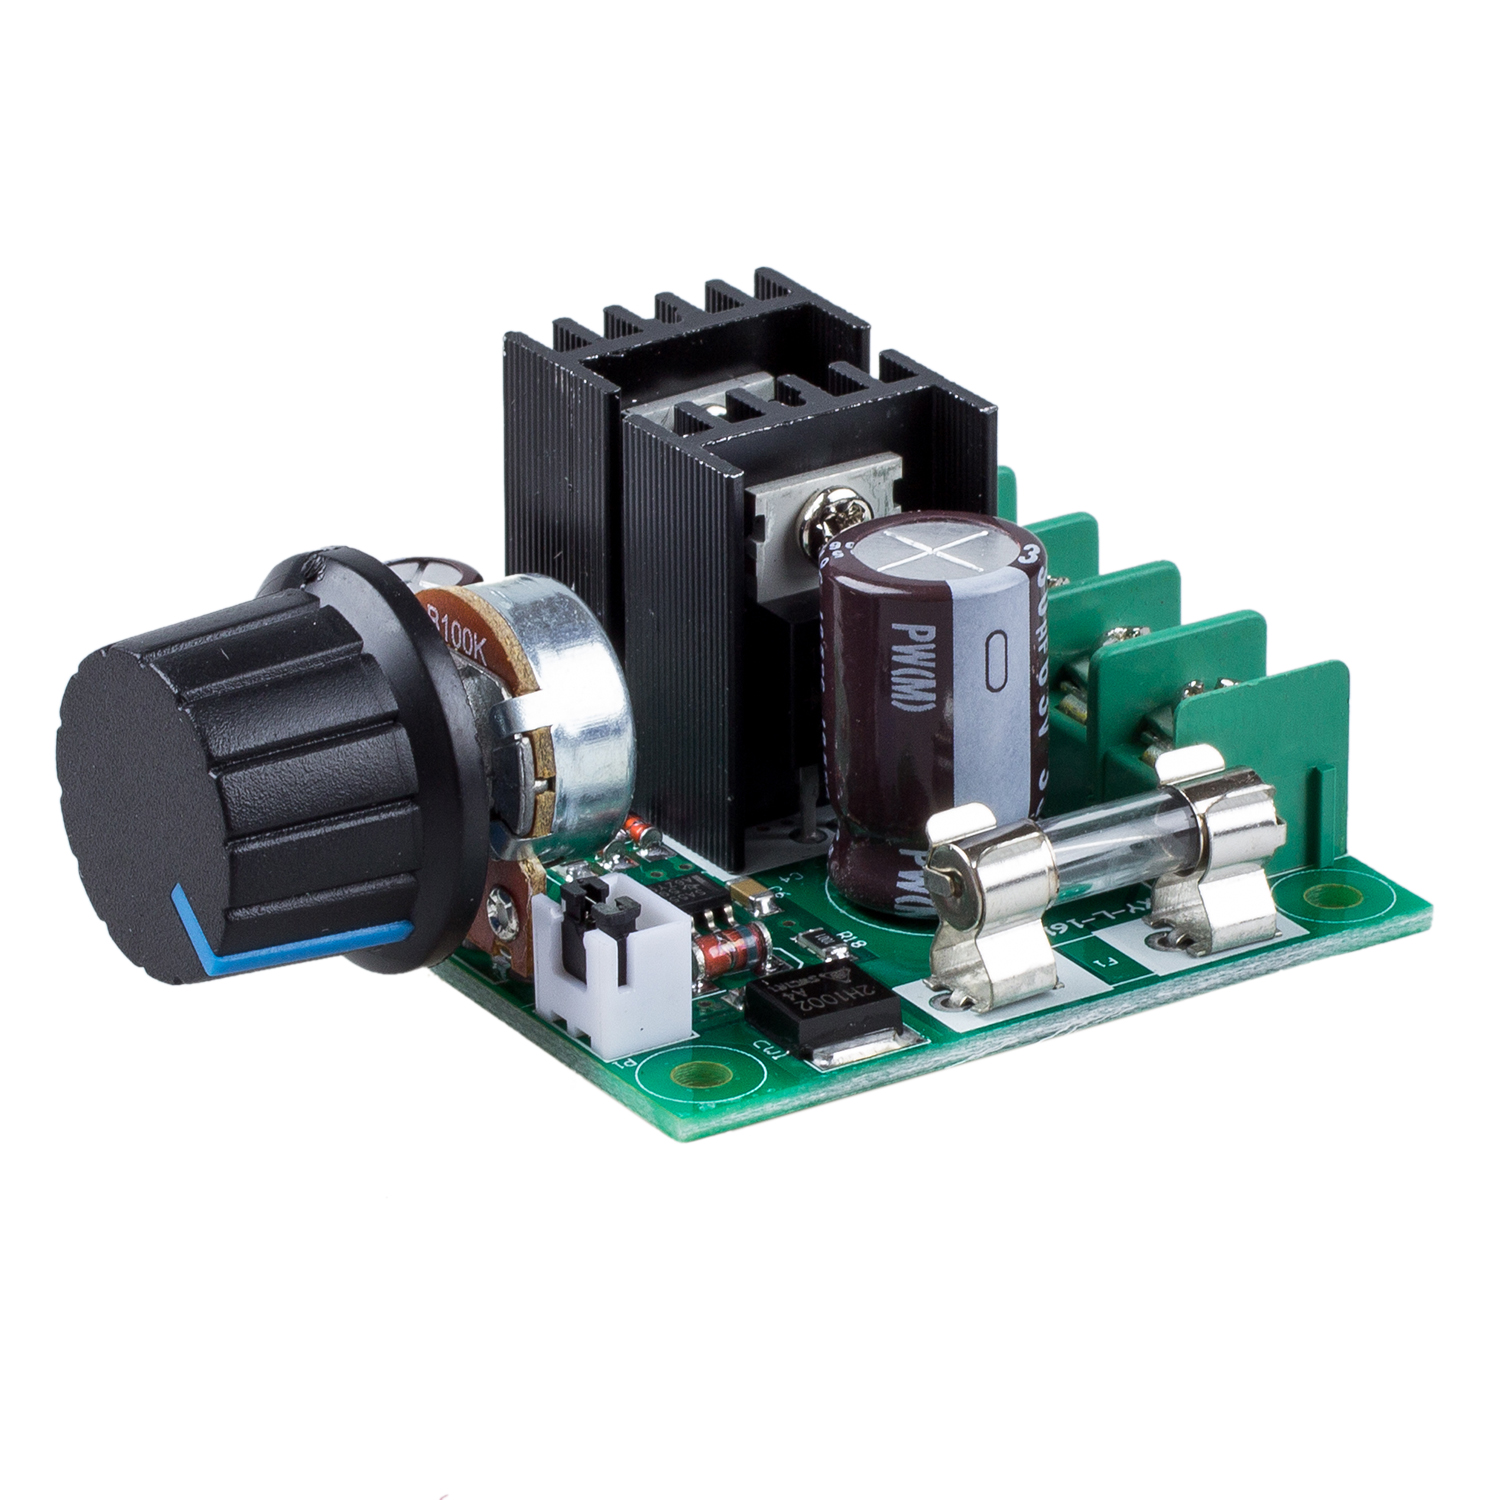 12v 40v 10a pwm dc motor speed controller with knob ed